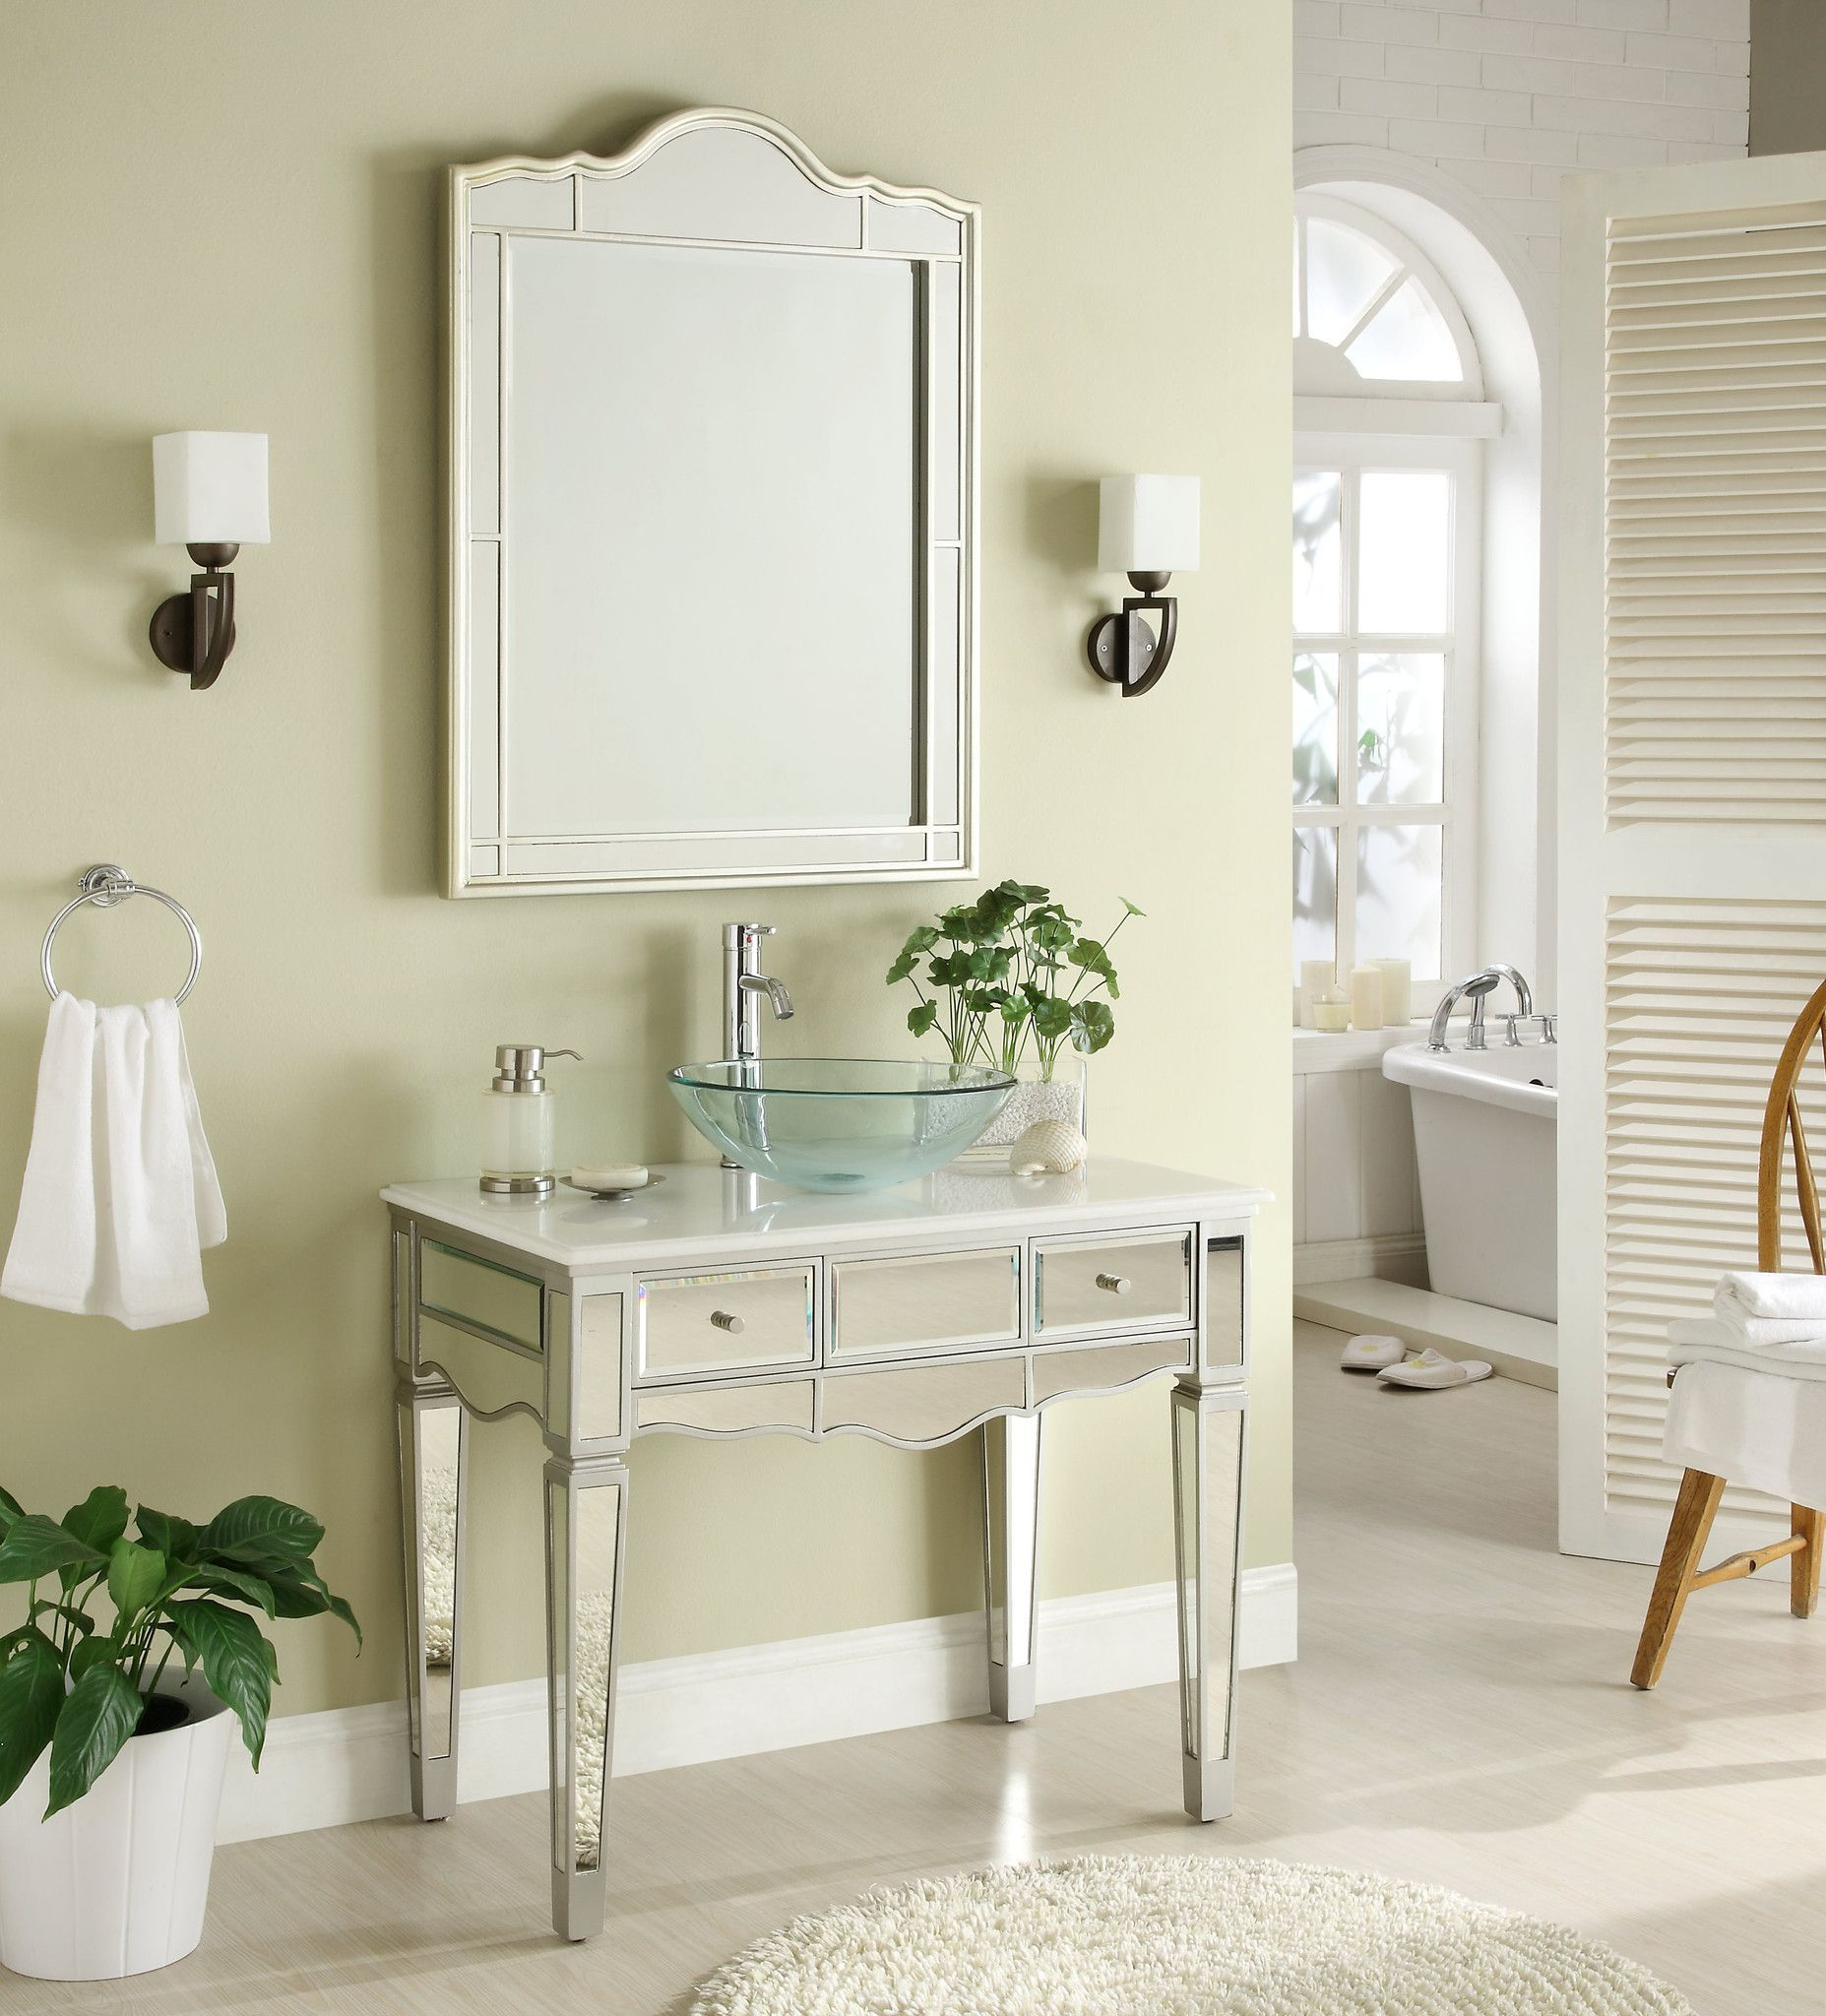 Bathroom sink and mirror - 36 Mirror Reflection Alston Vessel Sink Bathroom Sink Vanity Mirror Set Model Bwv